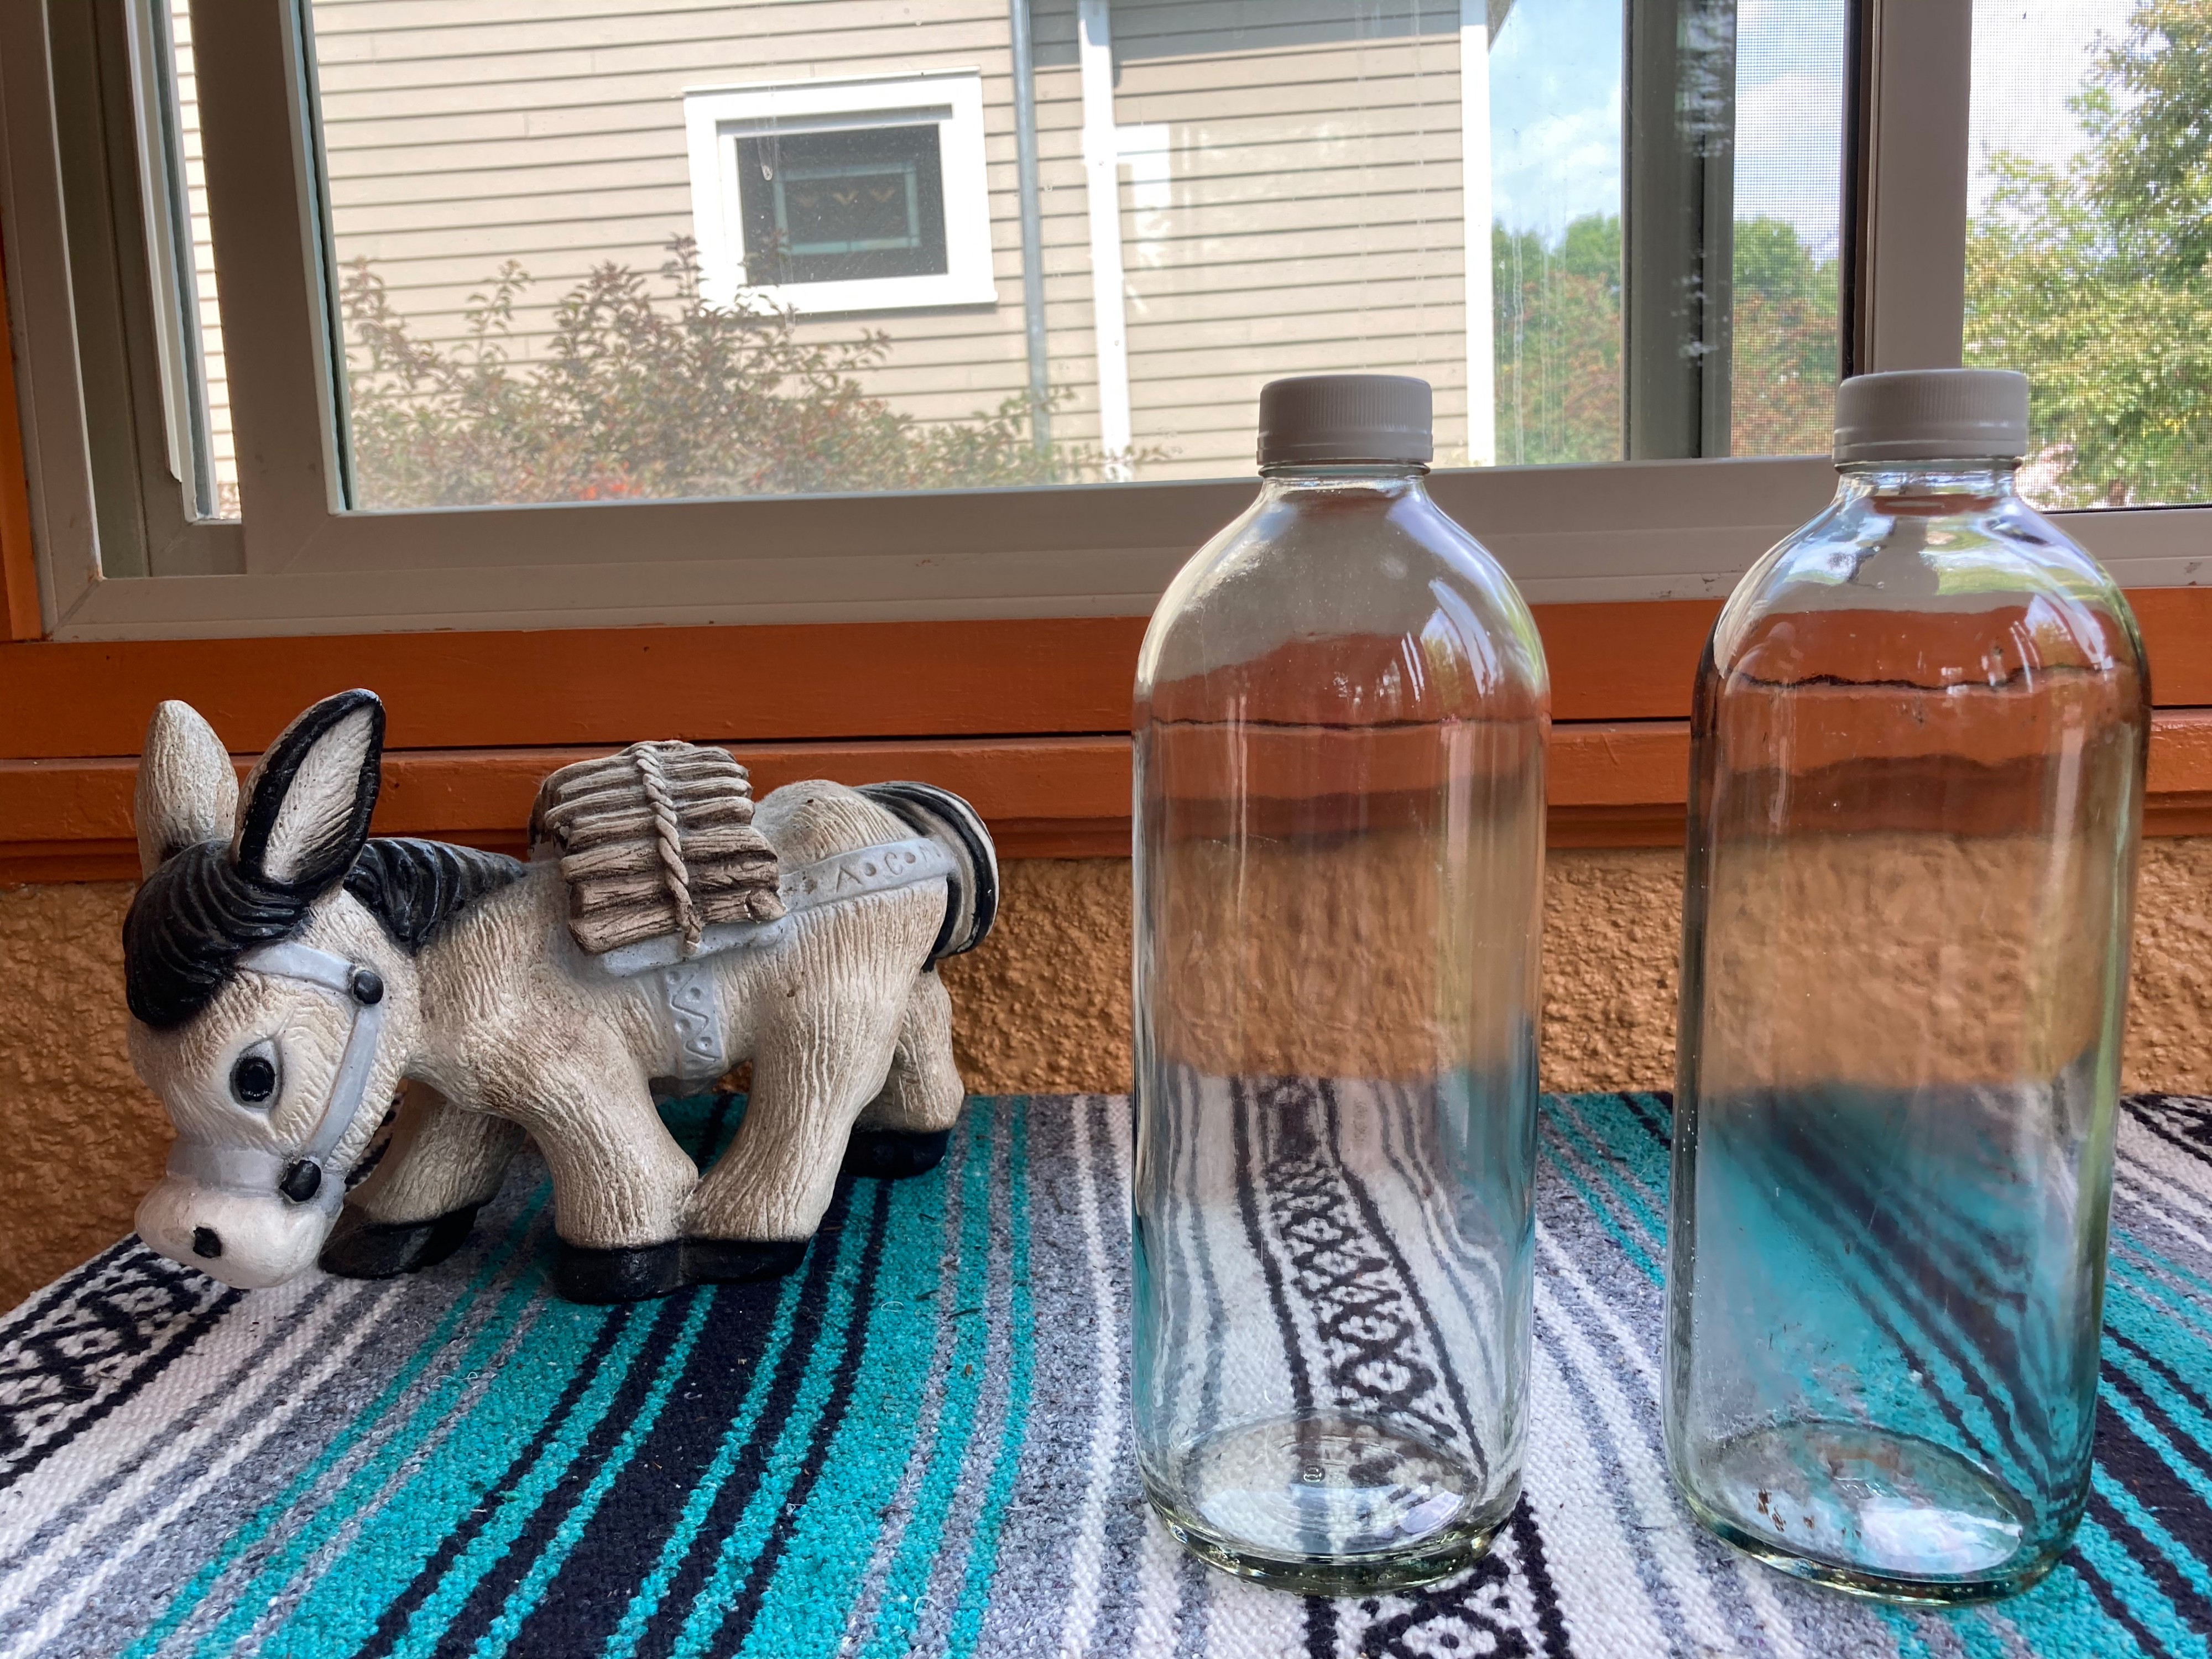 2 48-ounce bottles used for water, with a donkey for scale.